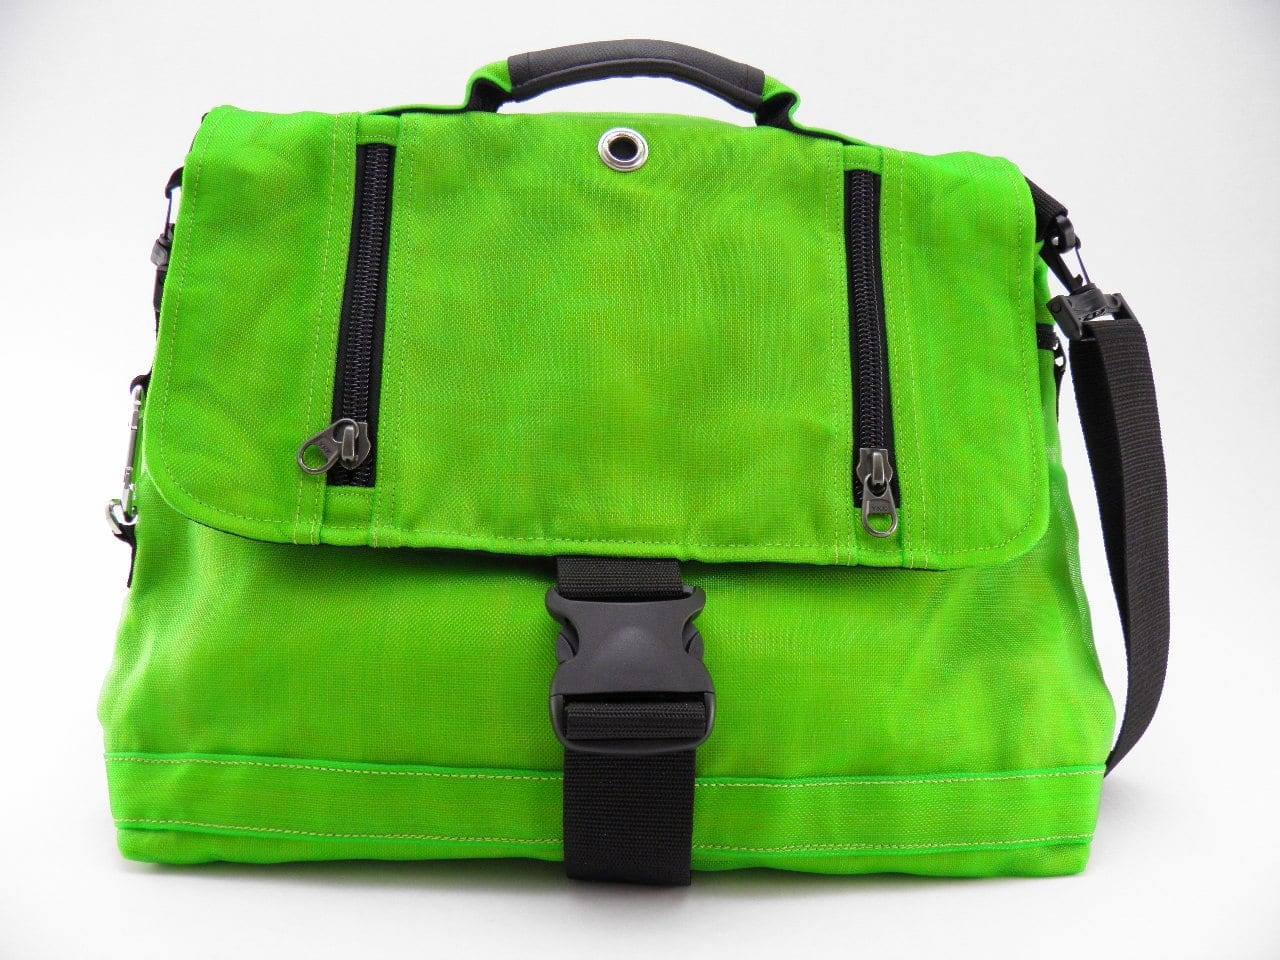 Le Relax - Sac Messager - Vert Pomme